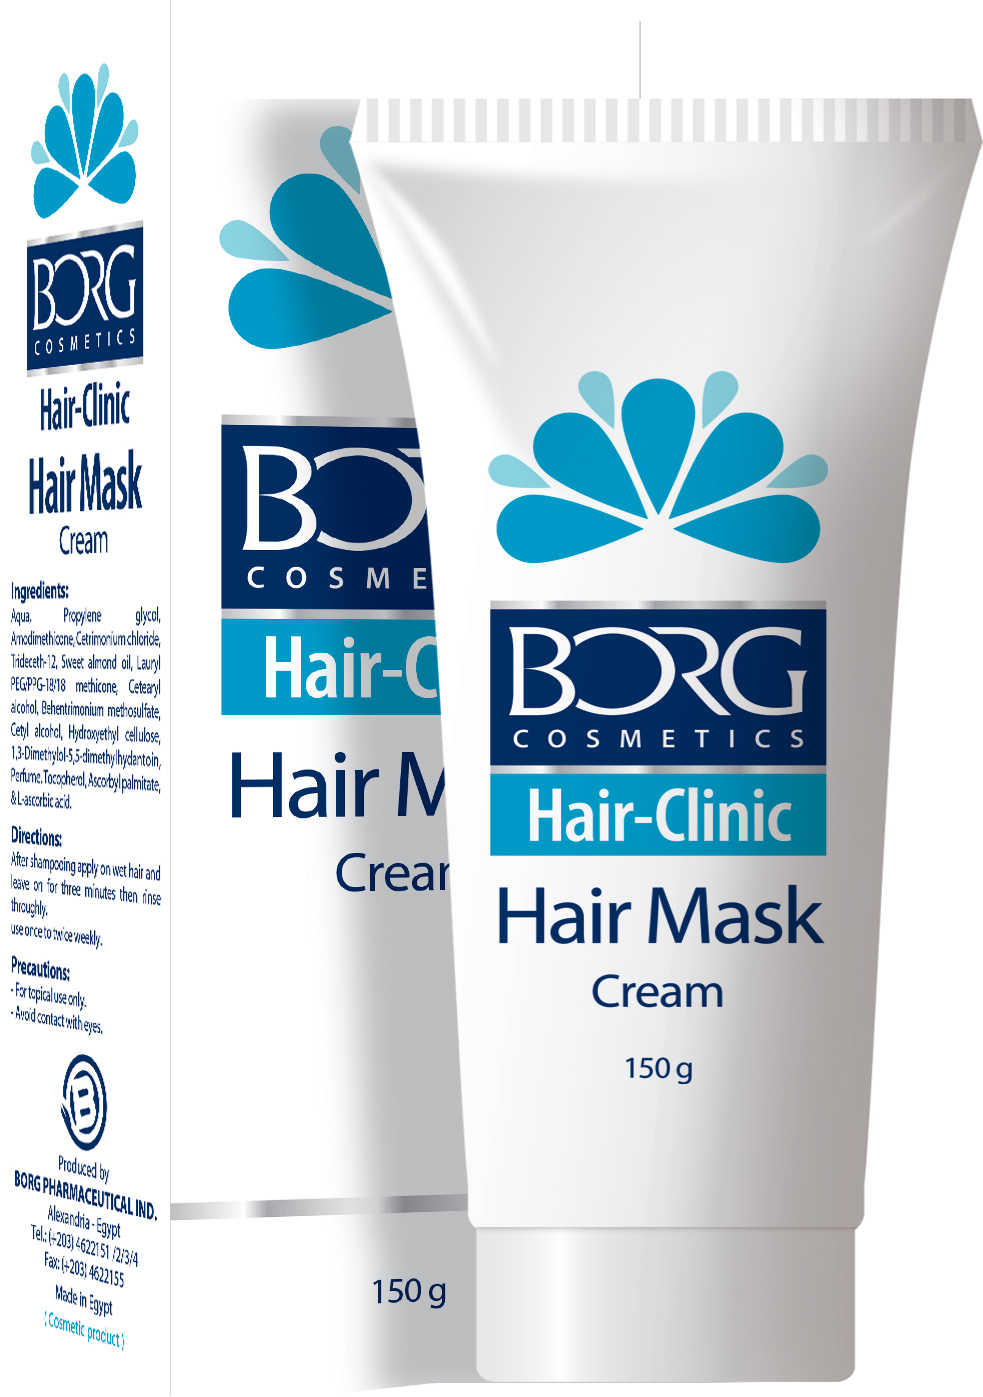 Borg Hair Mask Cream Borg